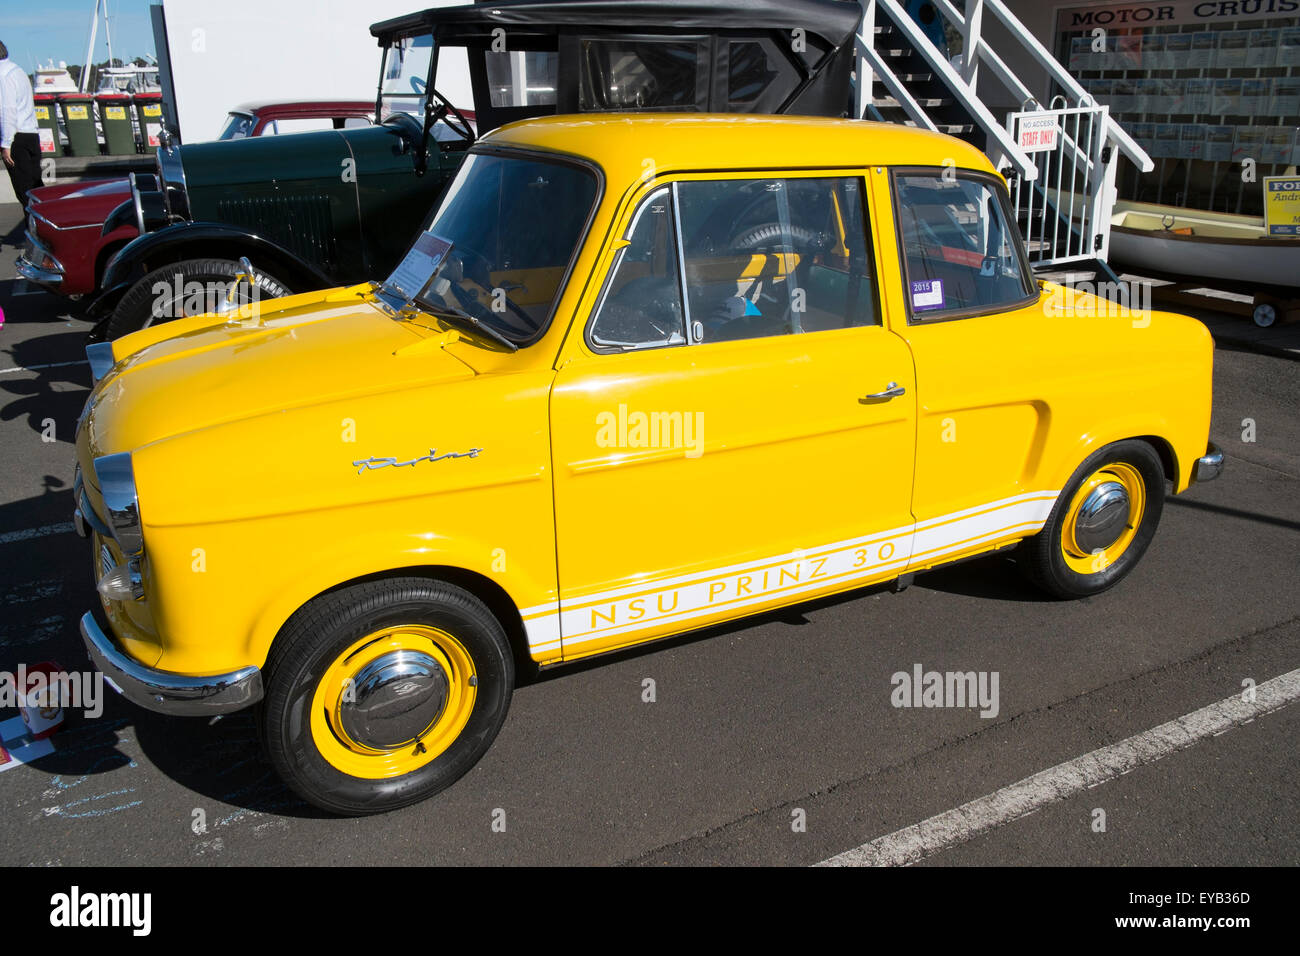 Nsu Prinz Stock Photos & Nsu Prinz Stock Images - Alamy